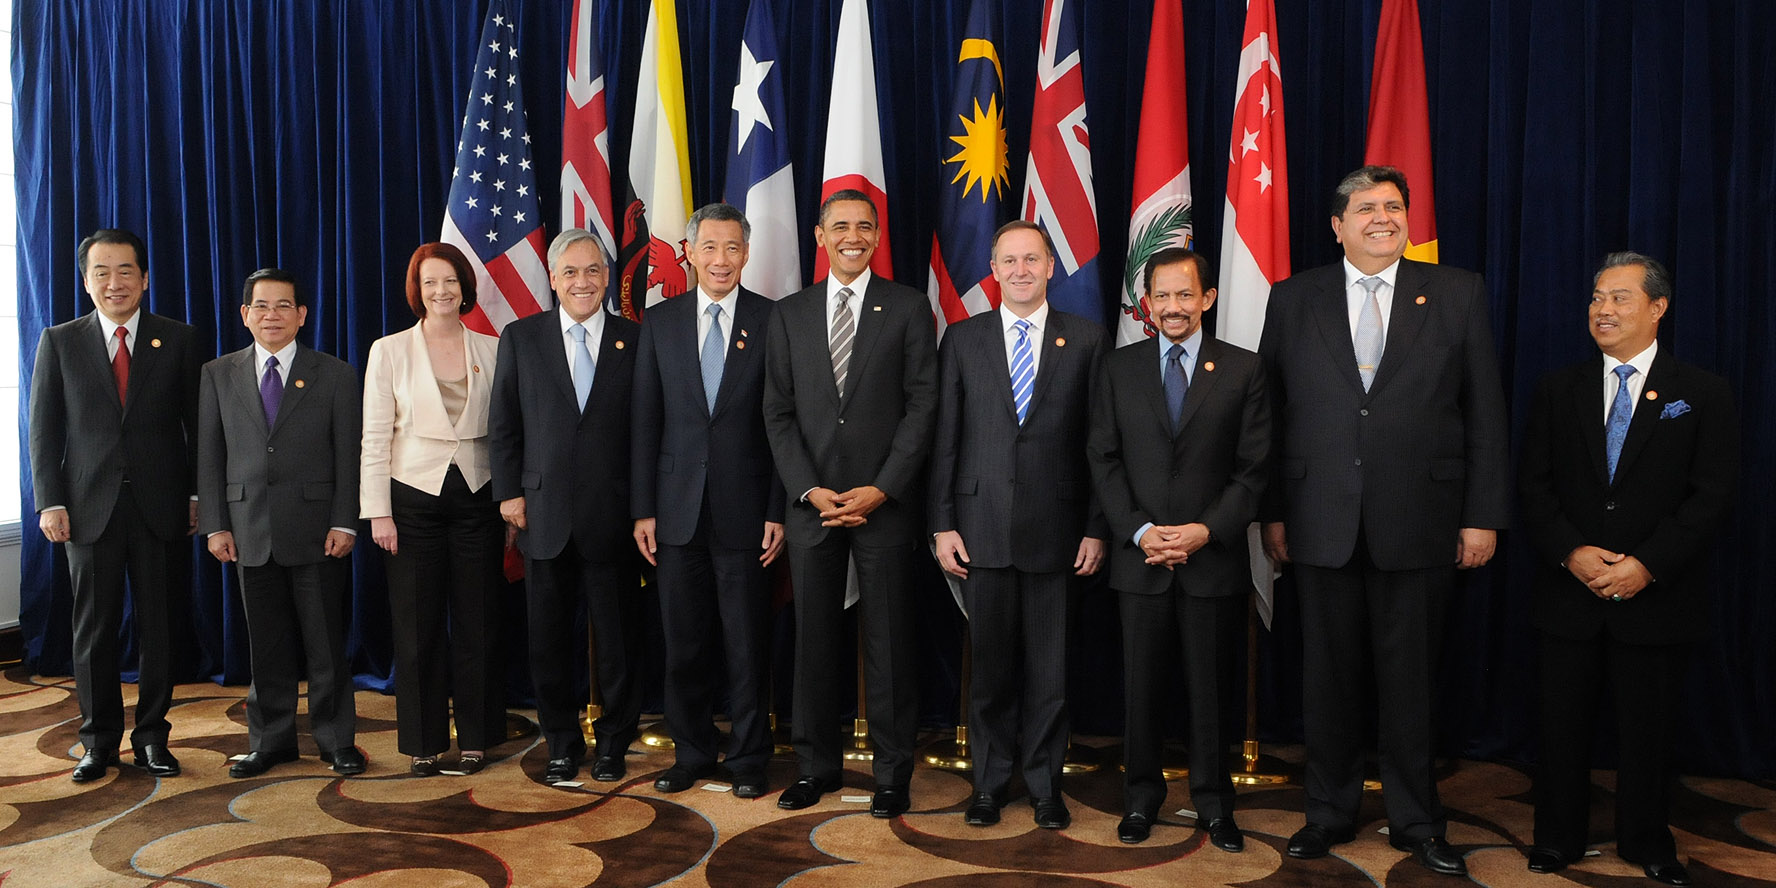 Leaders of prospective member states at a TPP summit in 2010. (Photo Credit: Gobierno de Chile)